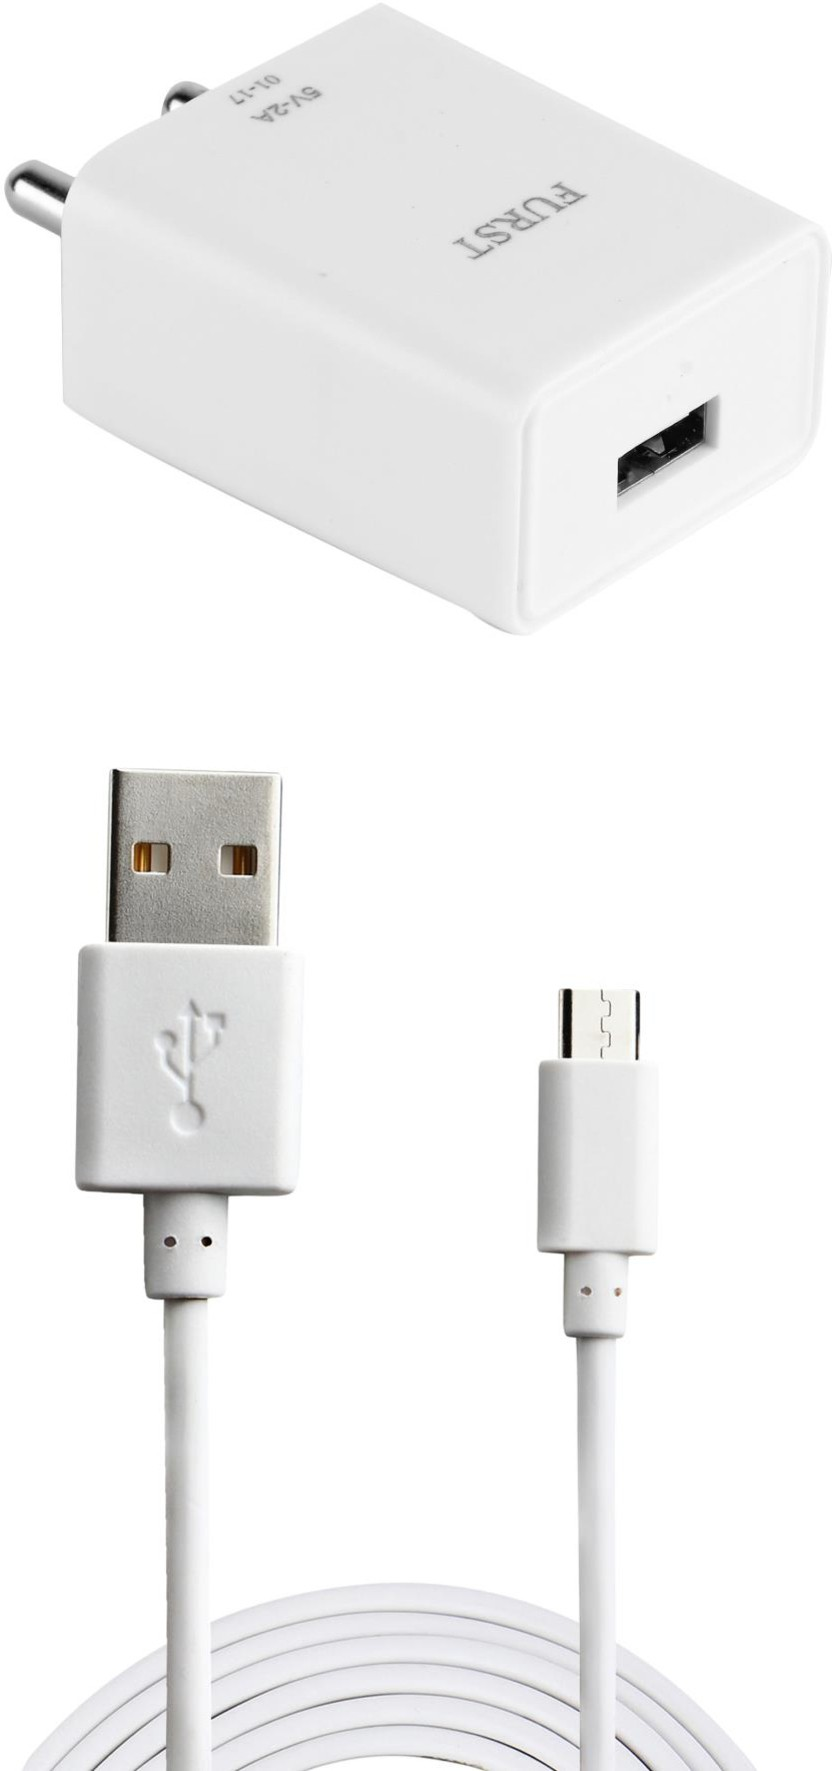 Furst 2A. Fast Charger with Cable (1 Mtr) For Moto G (Gen 2) Mobile Charger(White)